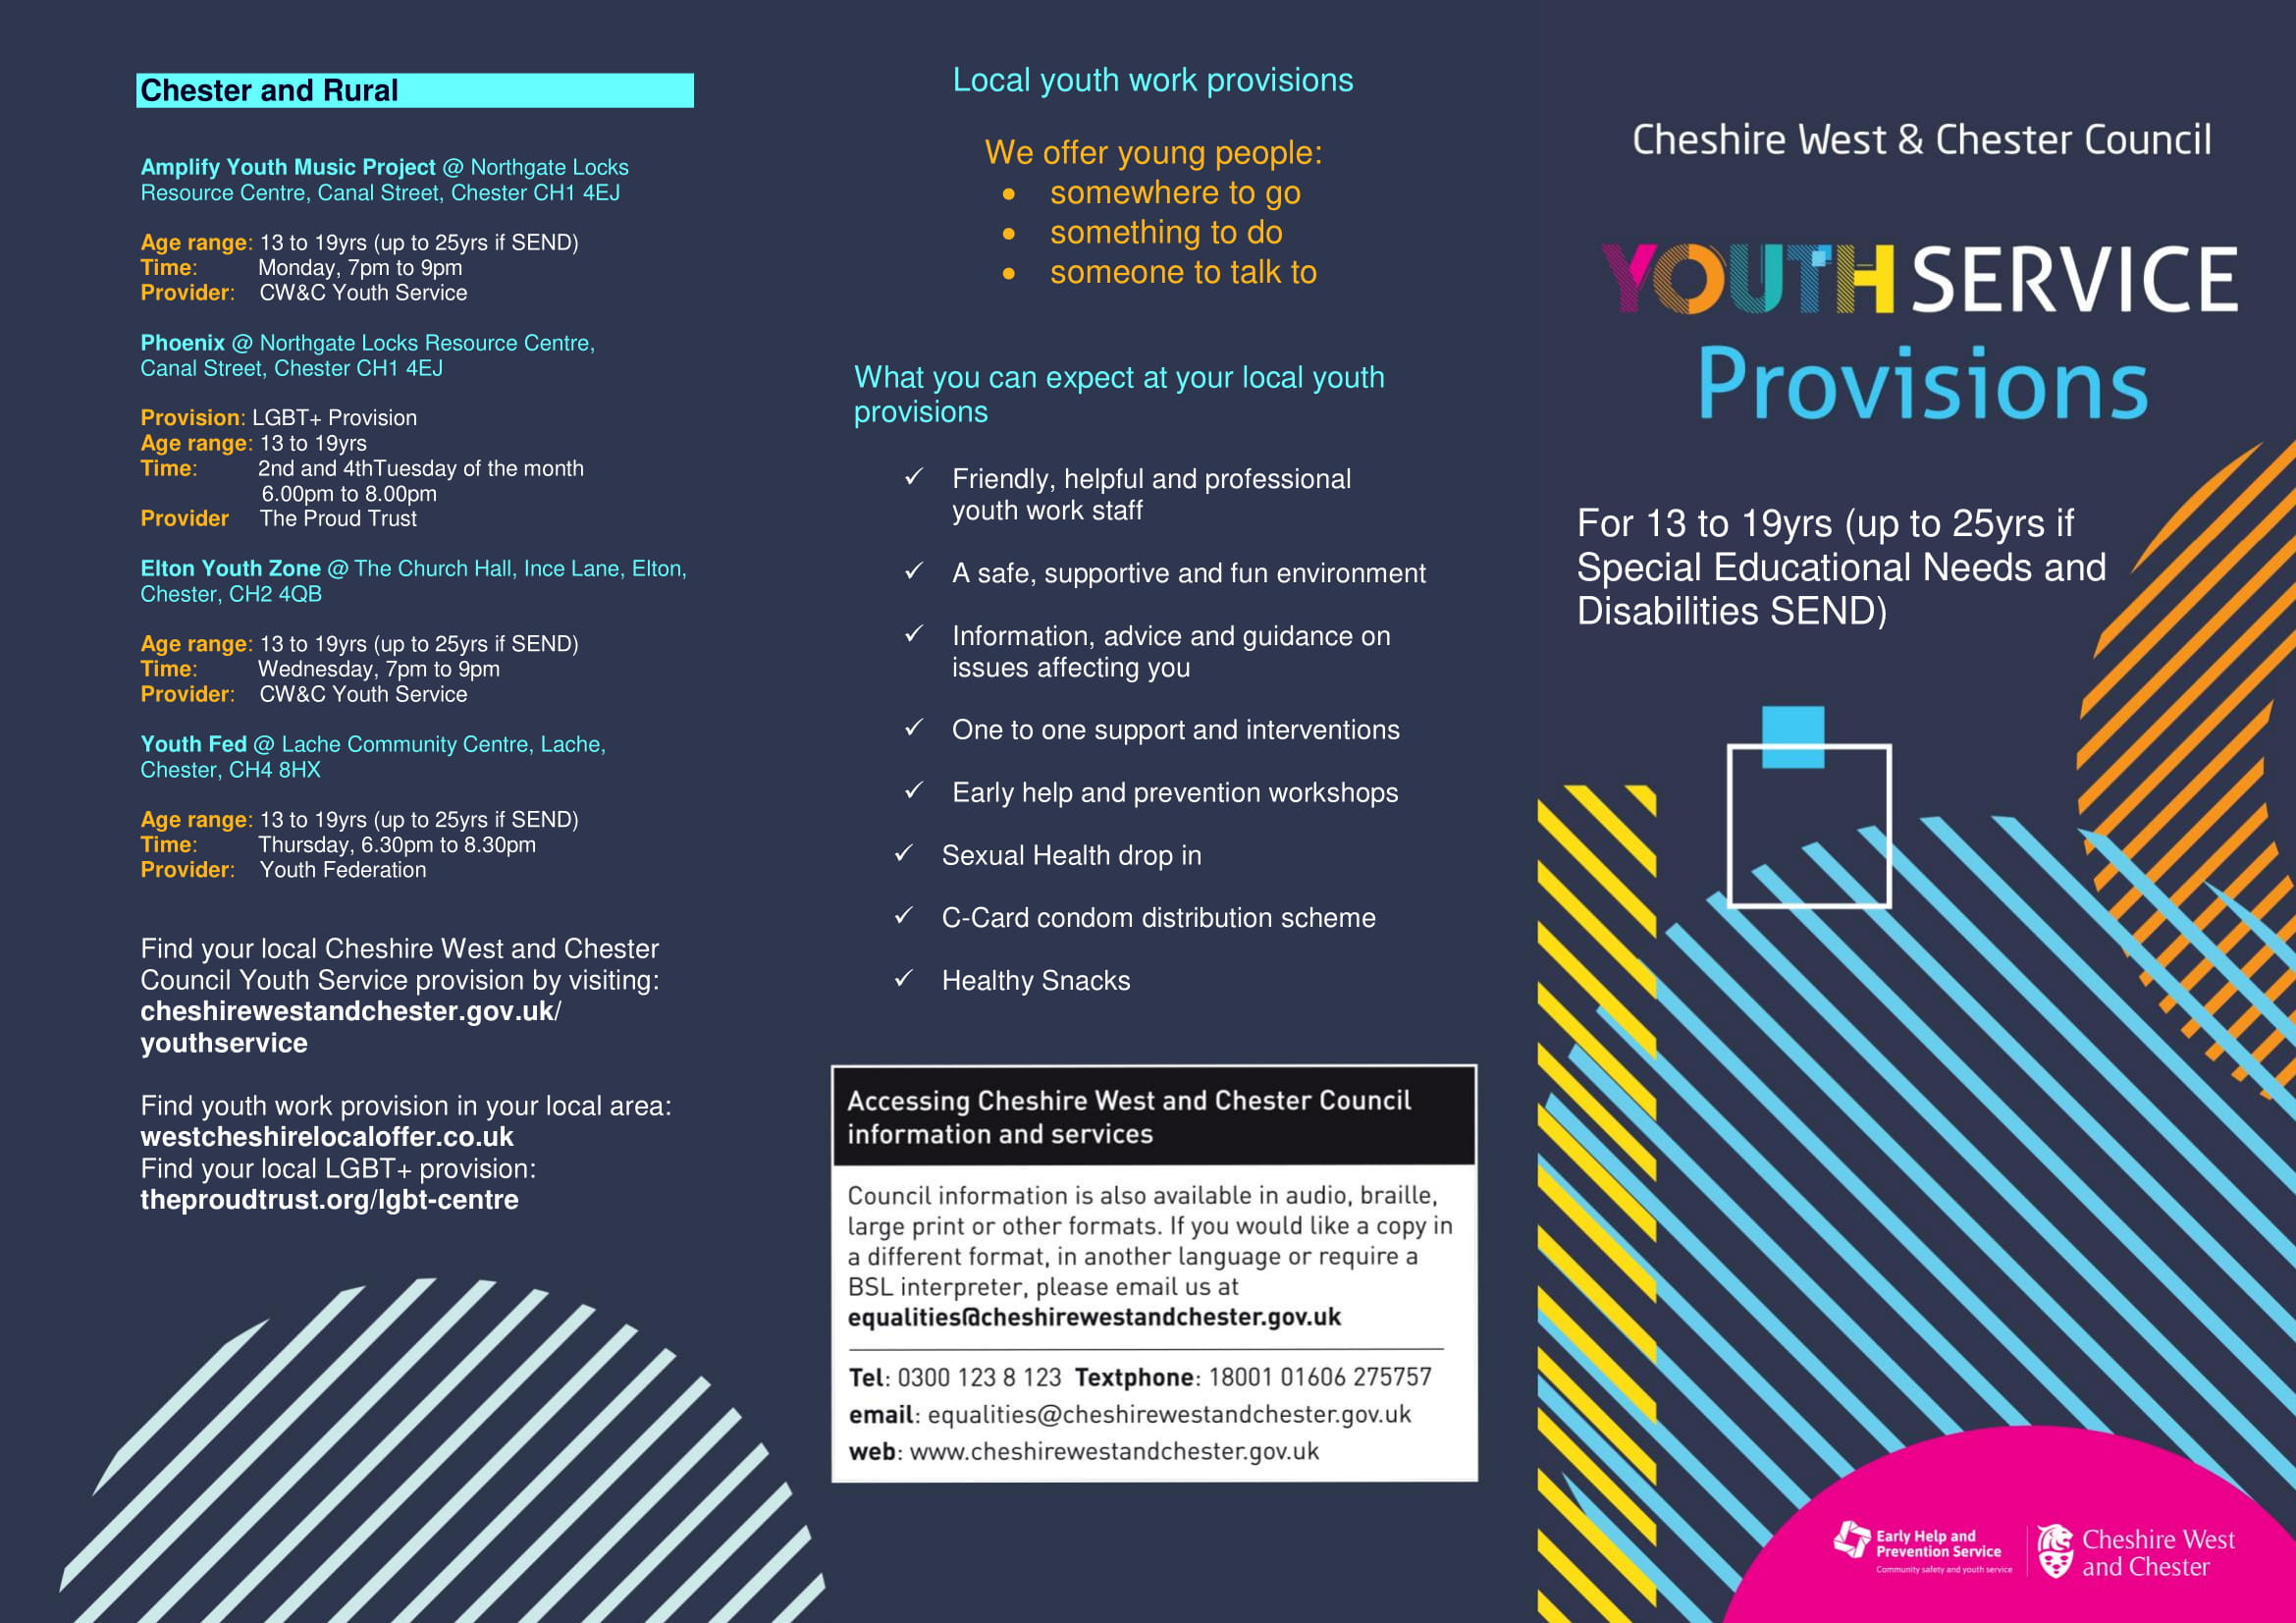 Youth Service Provisions